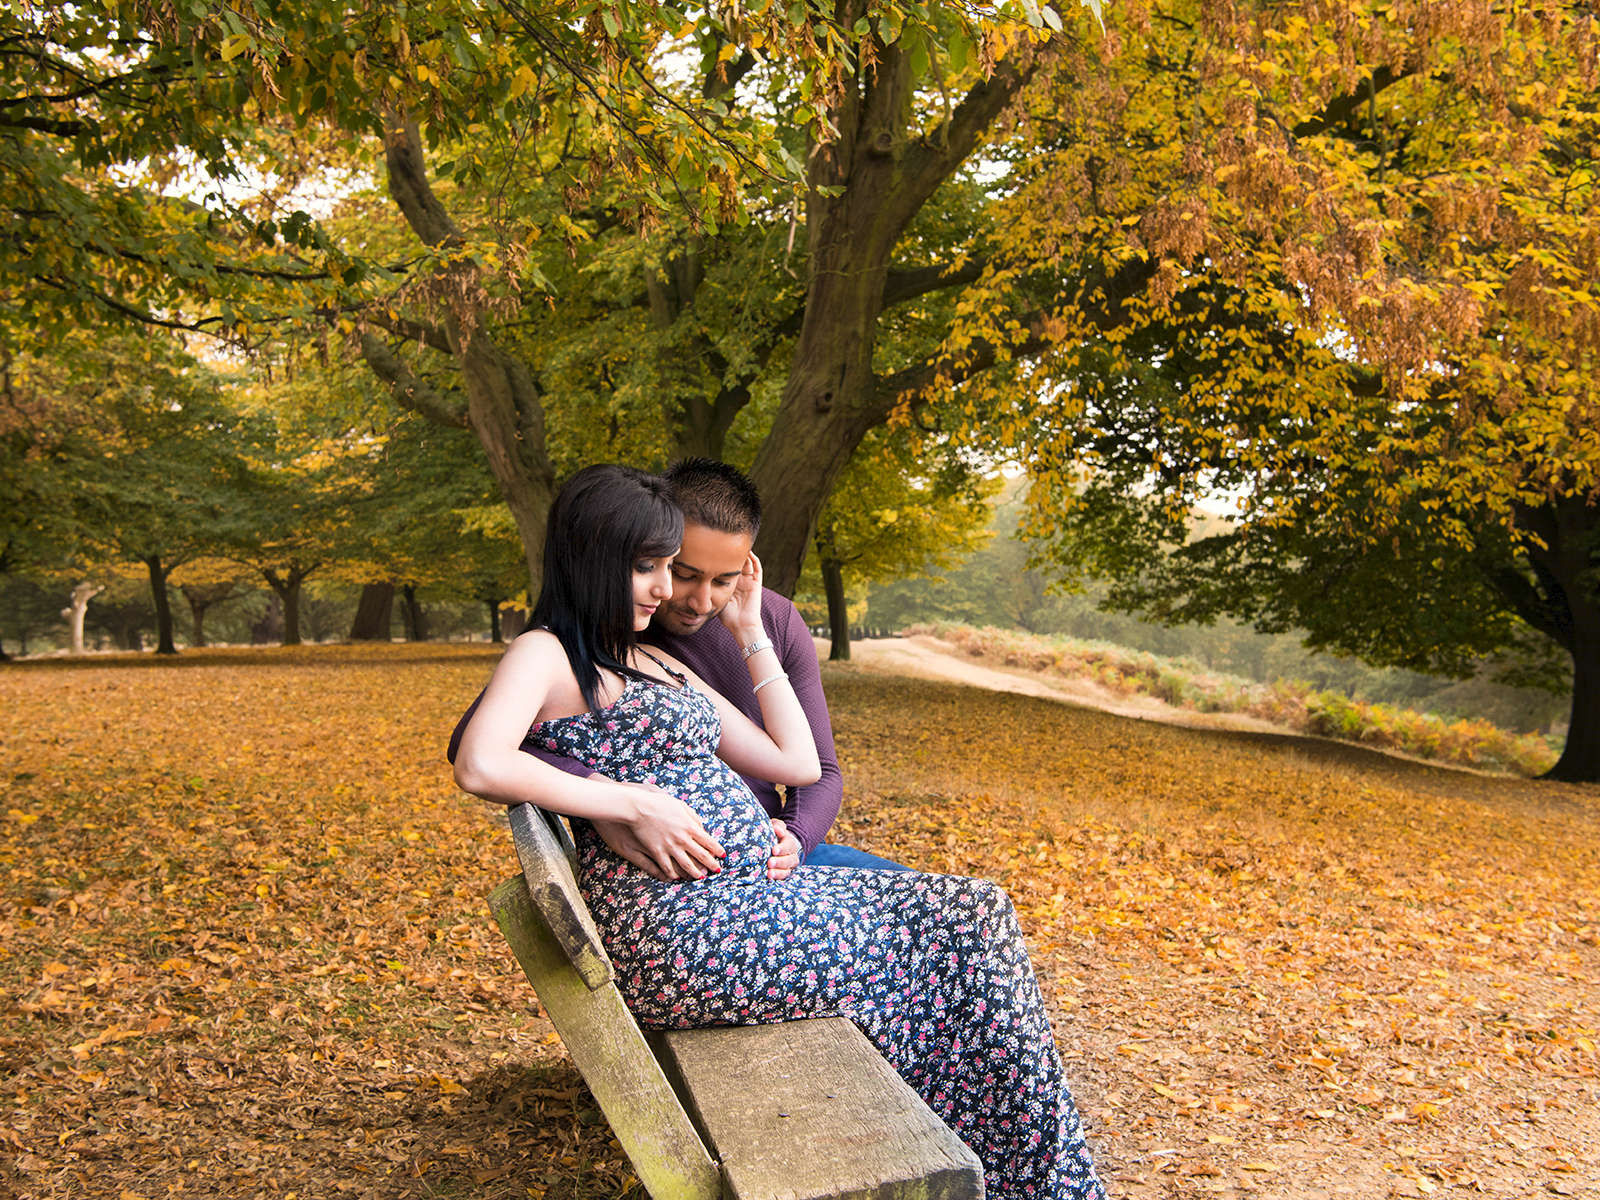 An atmospheric couples' maternity photography session in a London park.